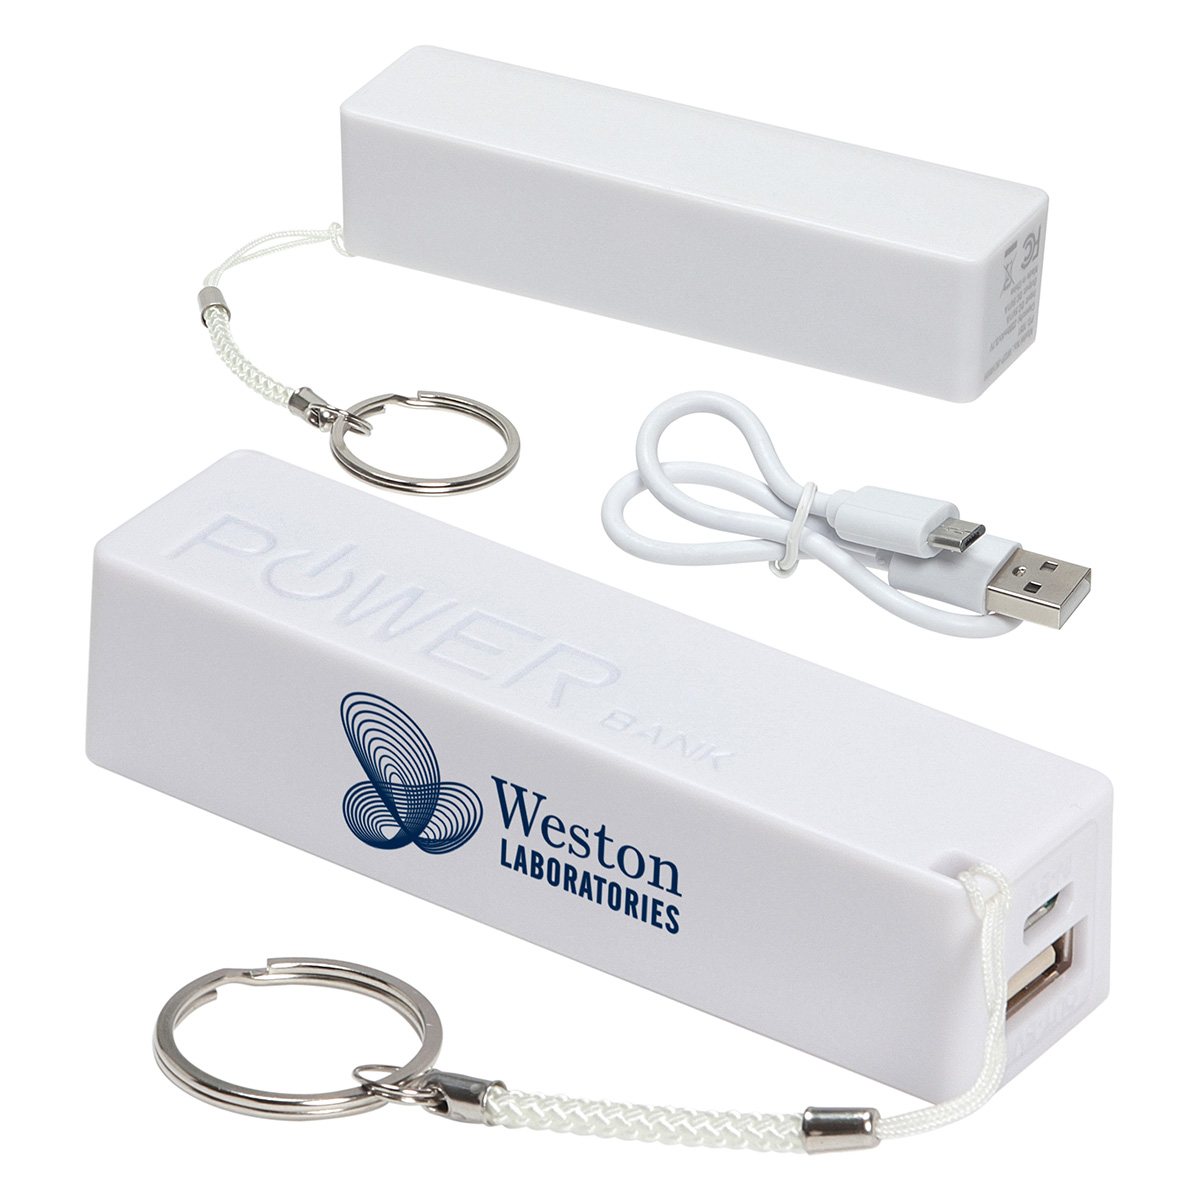 In-Style Power Bank, WCP-IN14 - 1 Colour Imprint